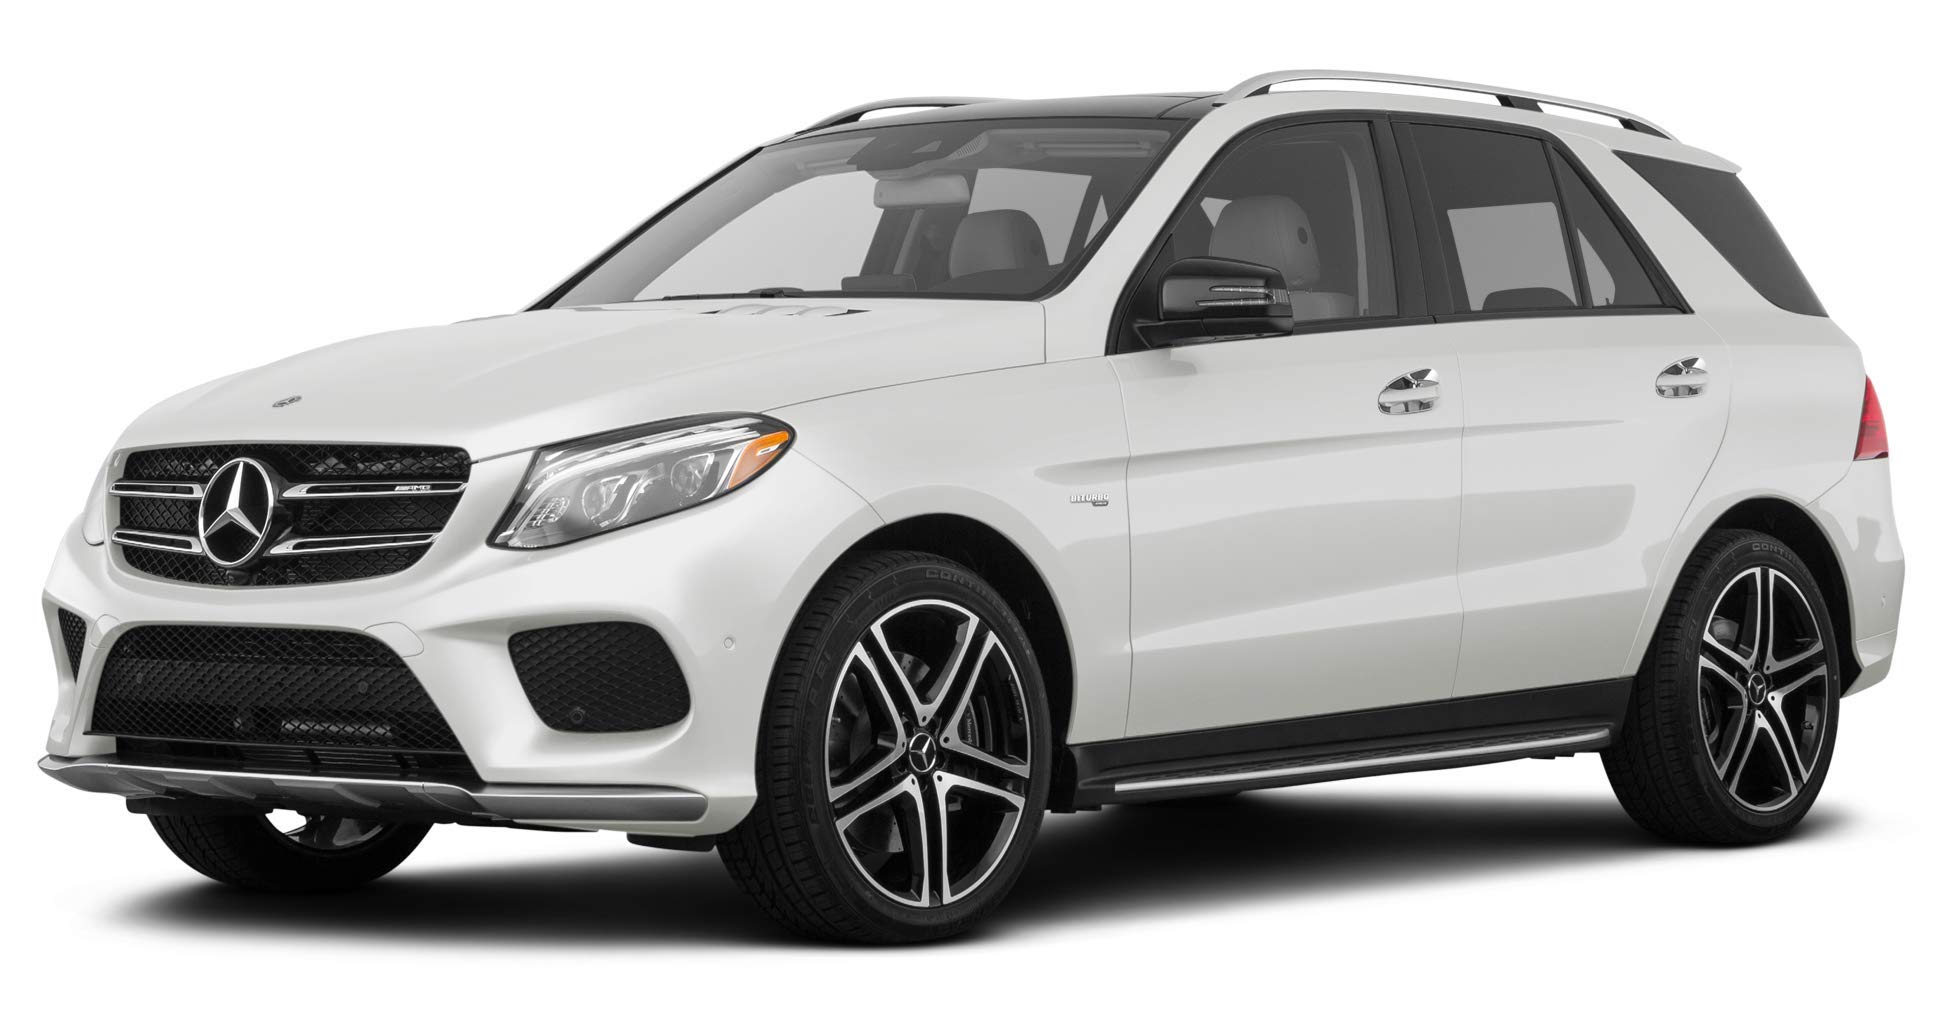 Amazon.com: 2019 BMW X6 Reviews, Images, and Specs: Vehicles